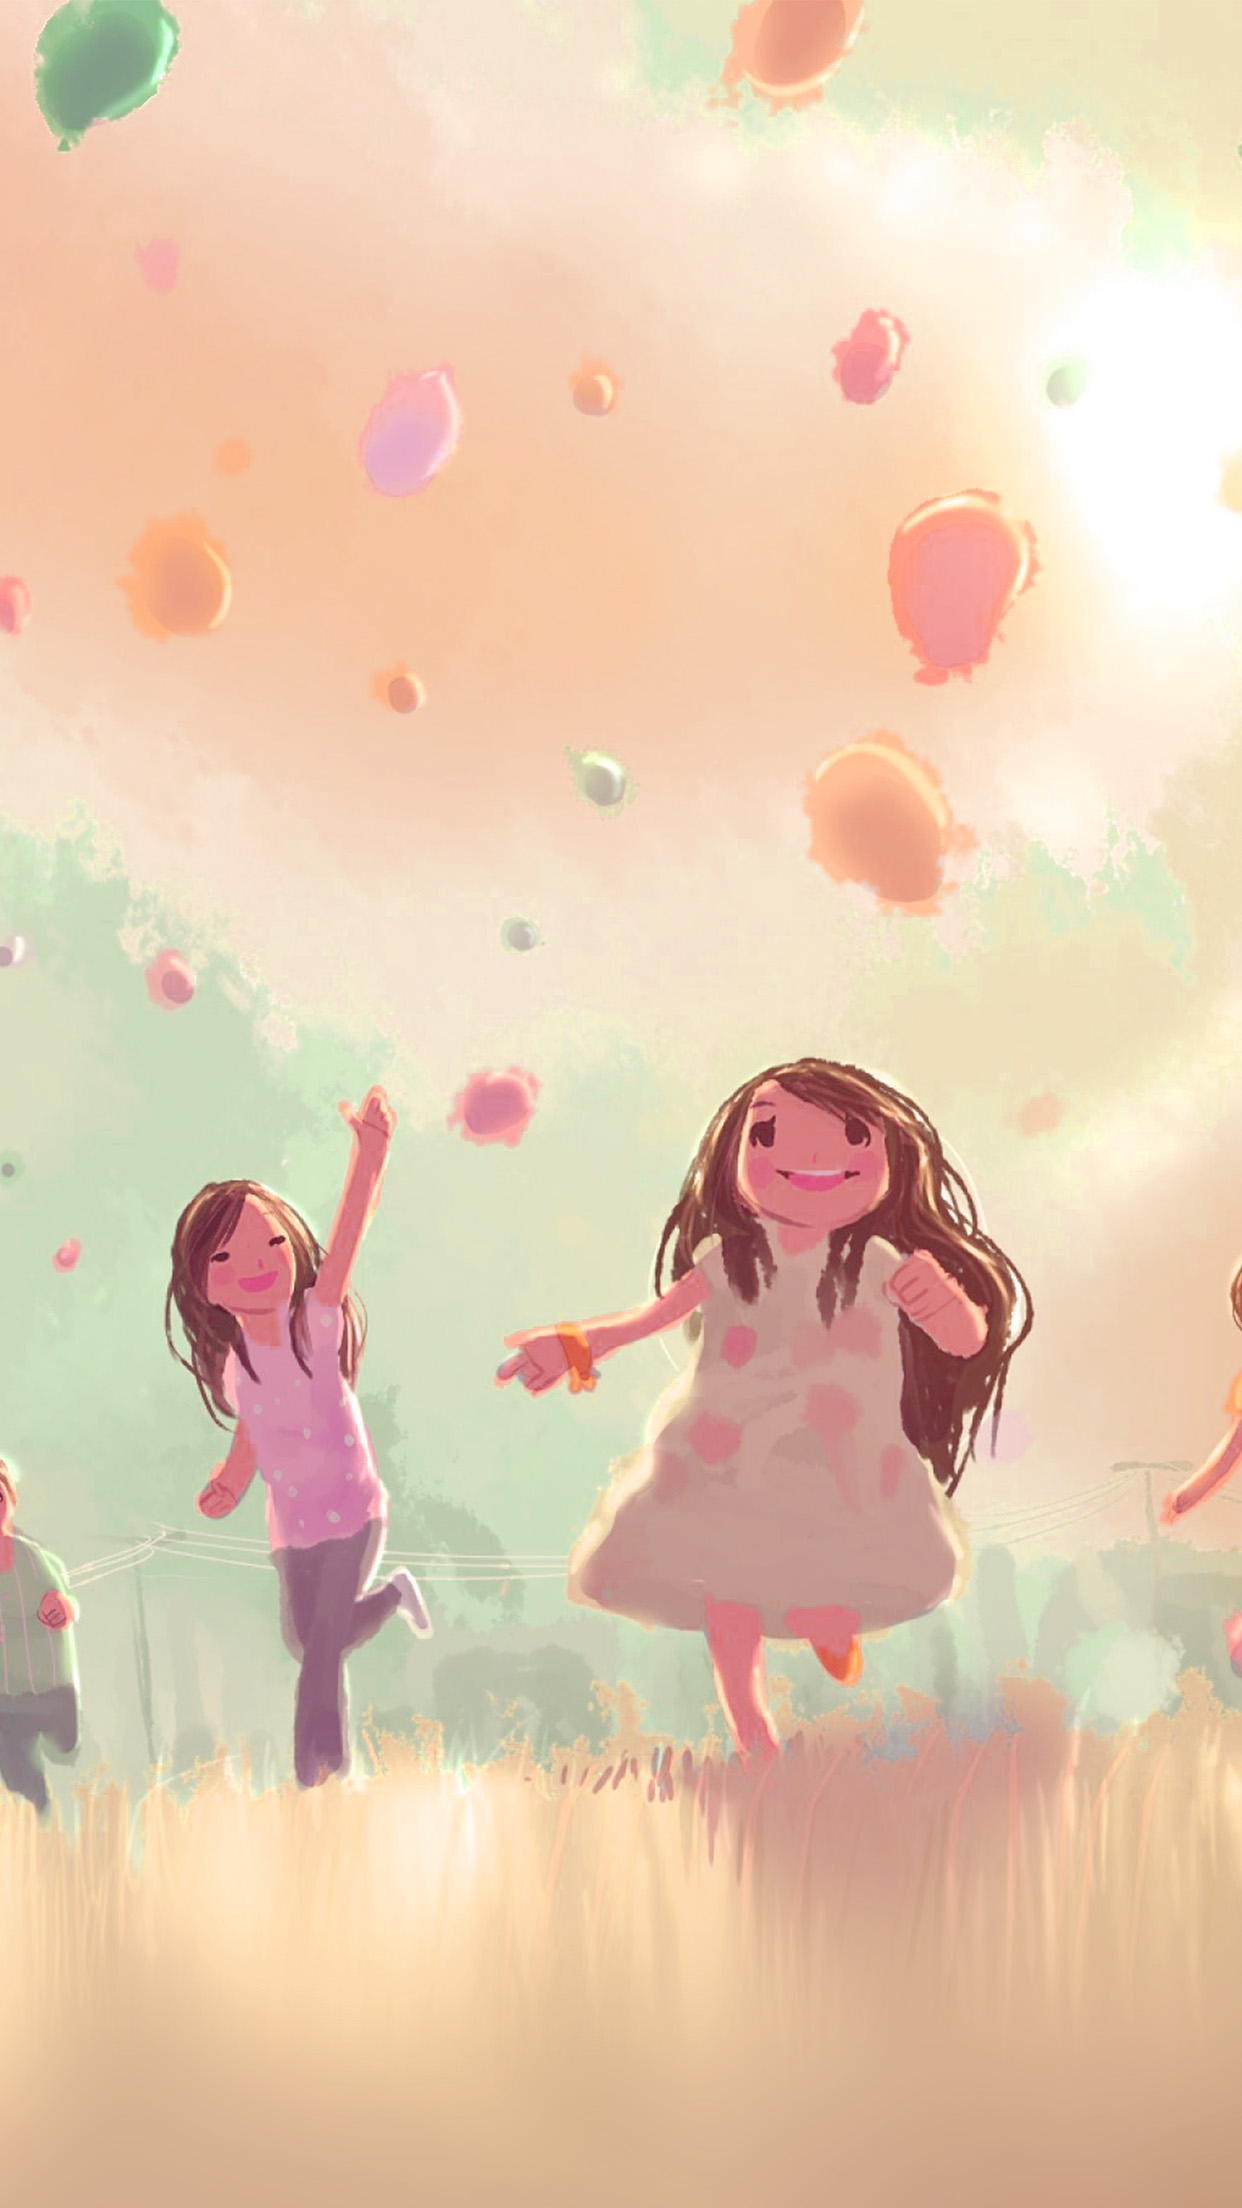 papers.co ap53 kids playing illustration art cute pink 34 iphone6 plus wallpaper